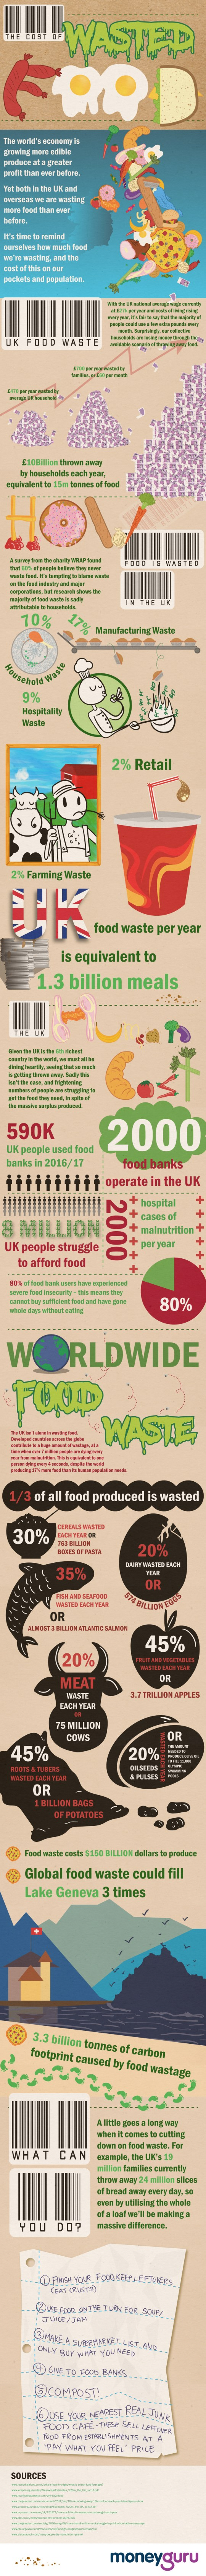 Cost of Wasted Food Infographic